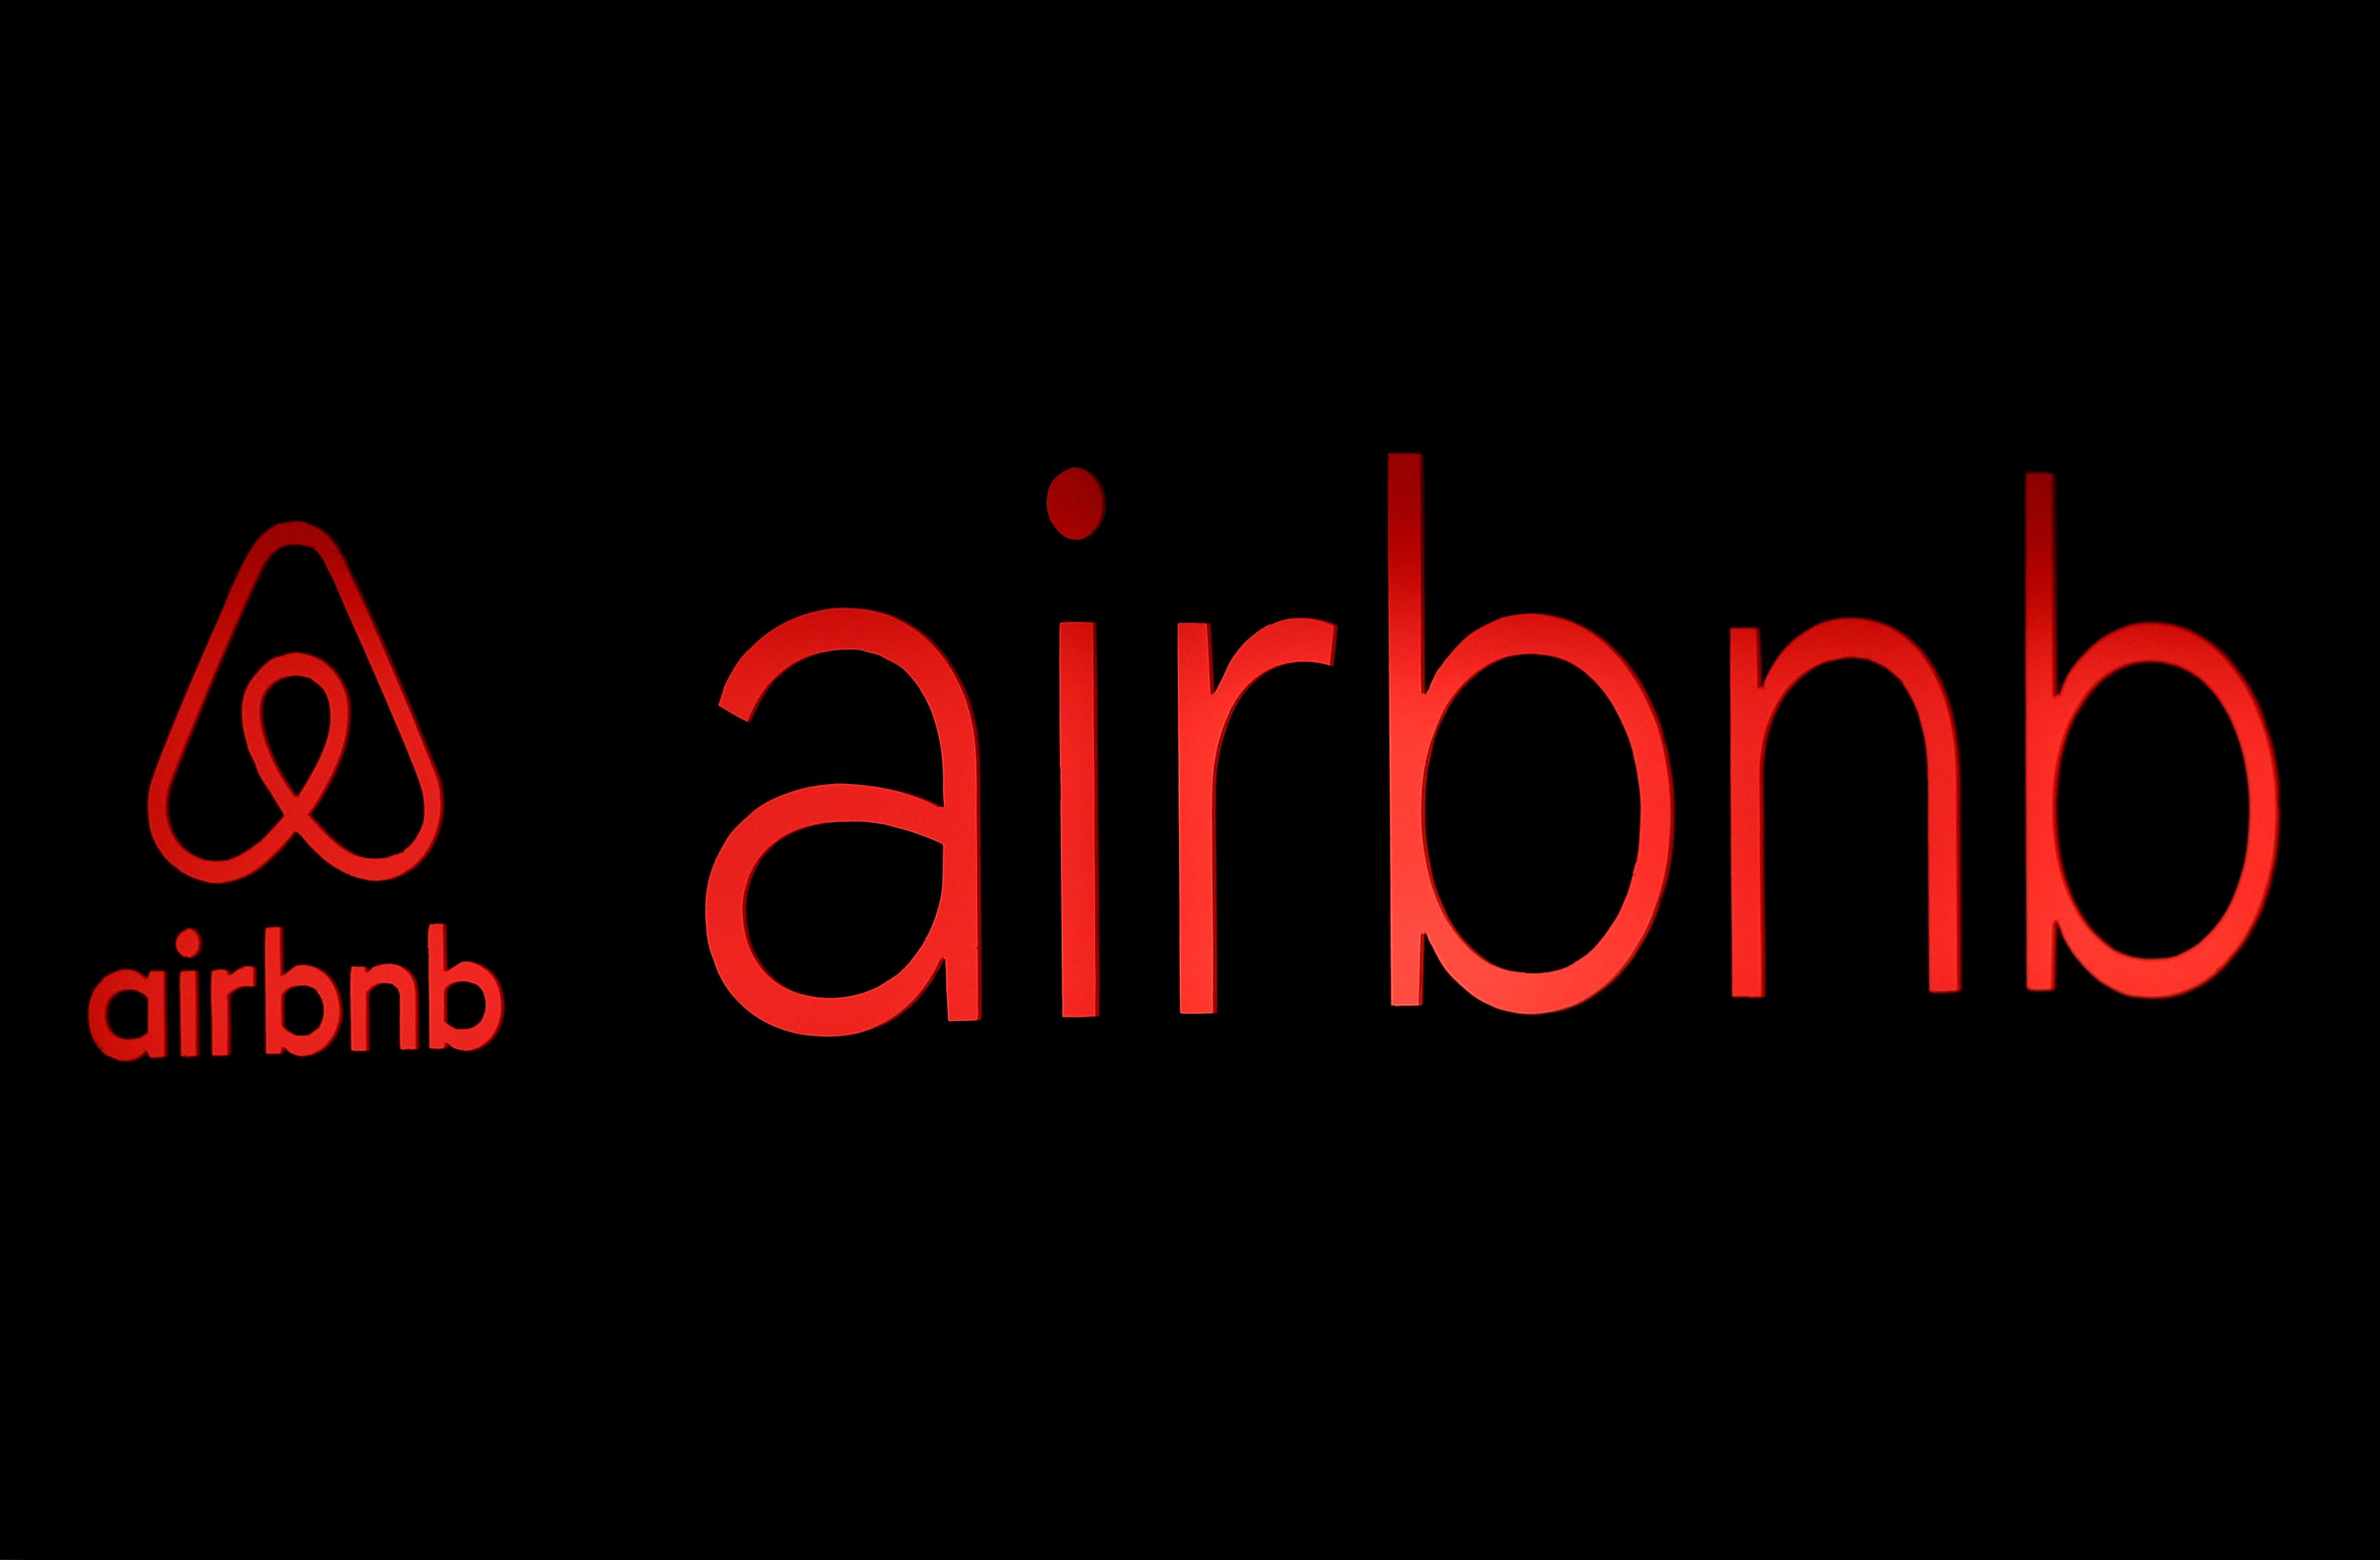 Exclusive: Morgan Stanley, Goldman Sachs poised to lead Airbnb's...